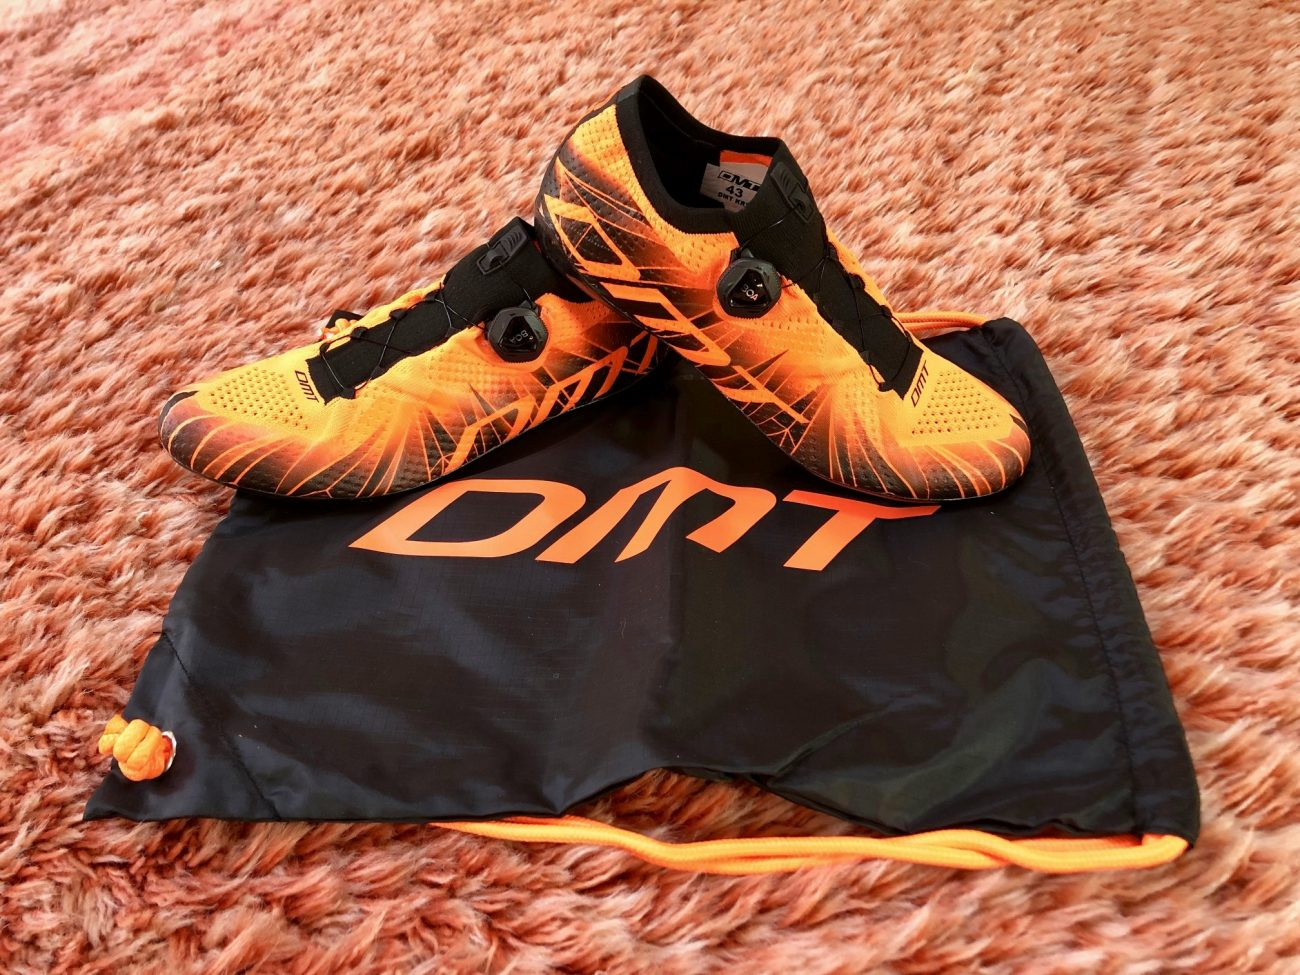 CapoVelo com | DMT KR1 Road Shoe Reviewed